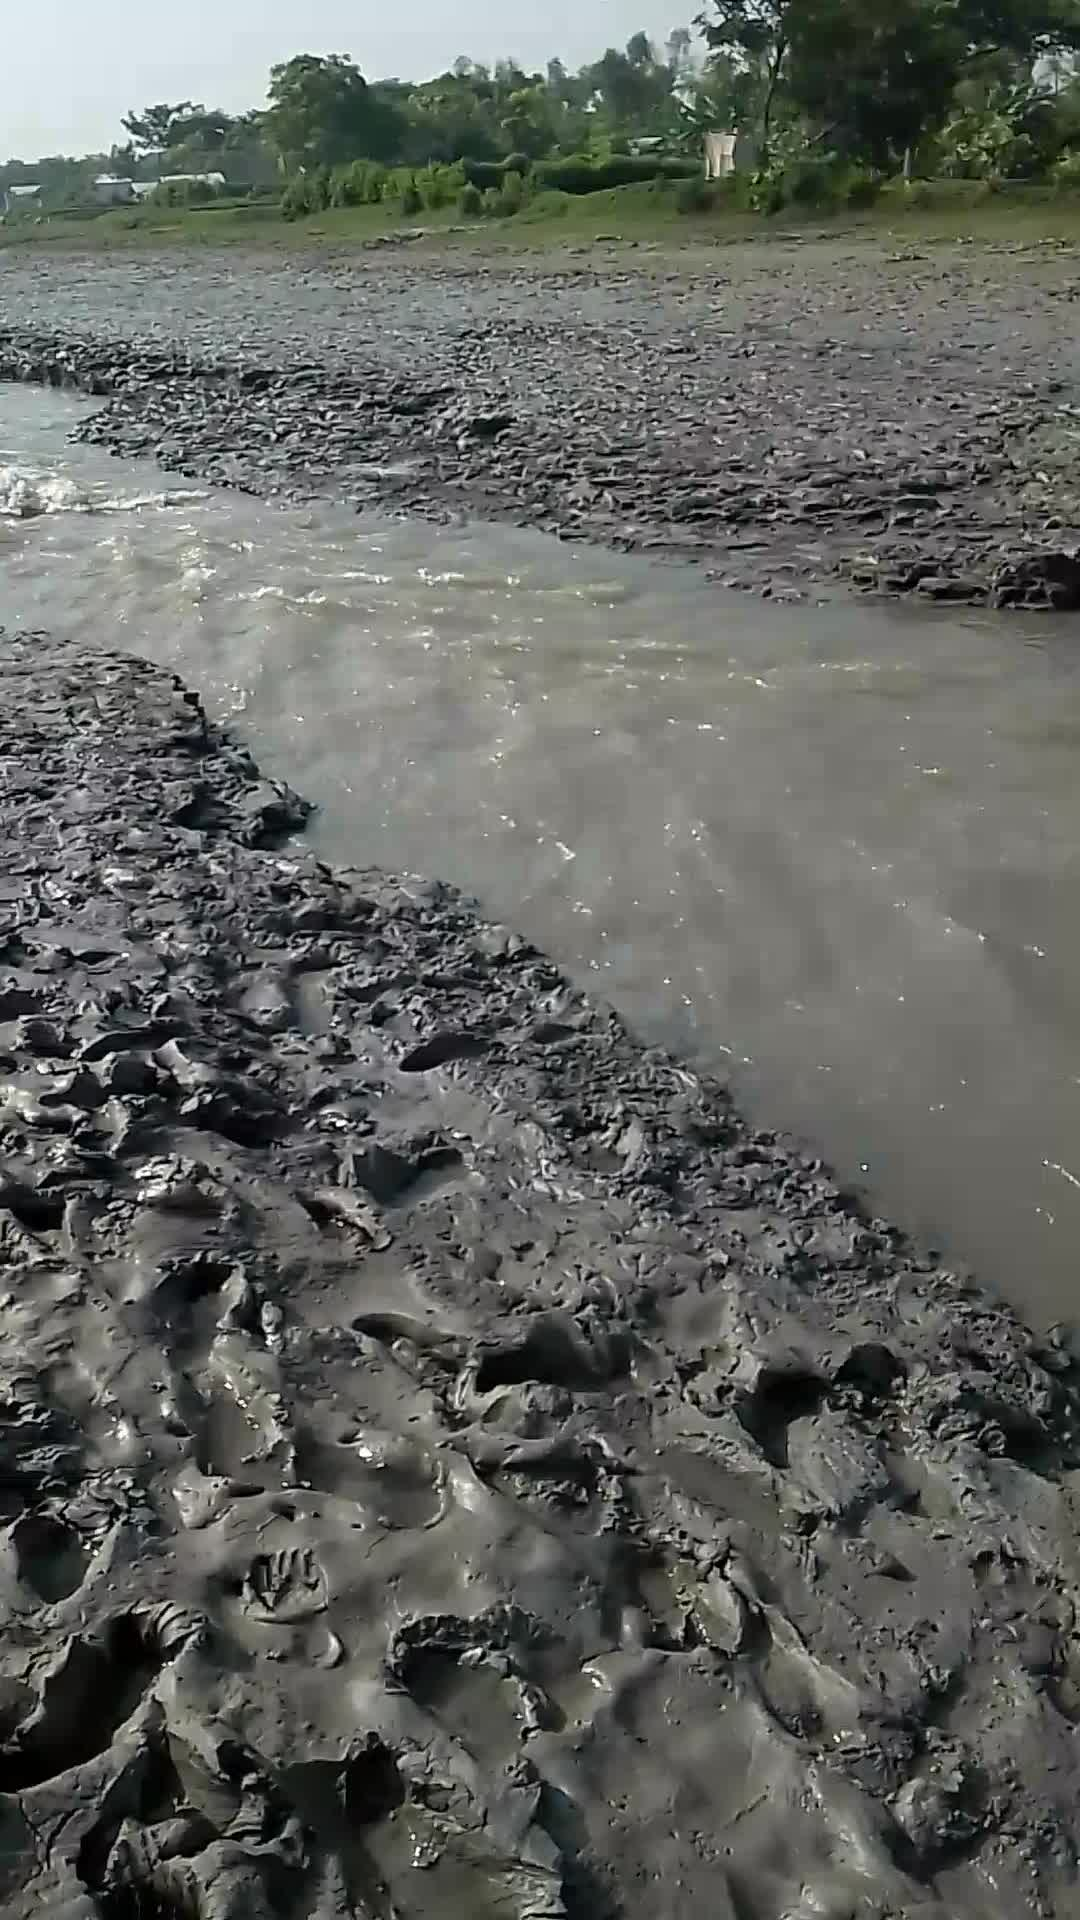 River erosion in the southern region of Bangladesh